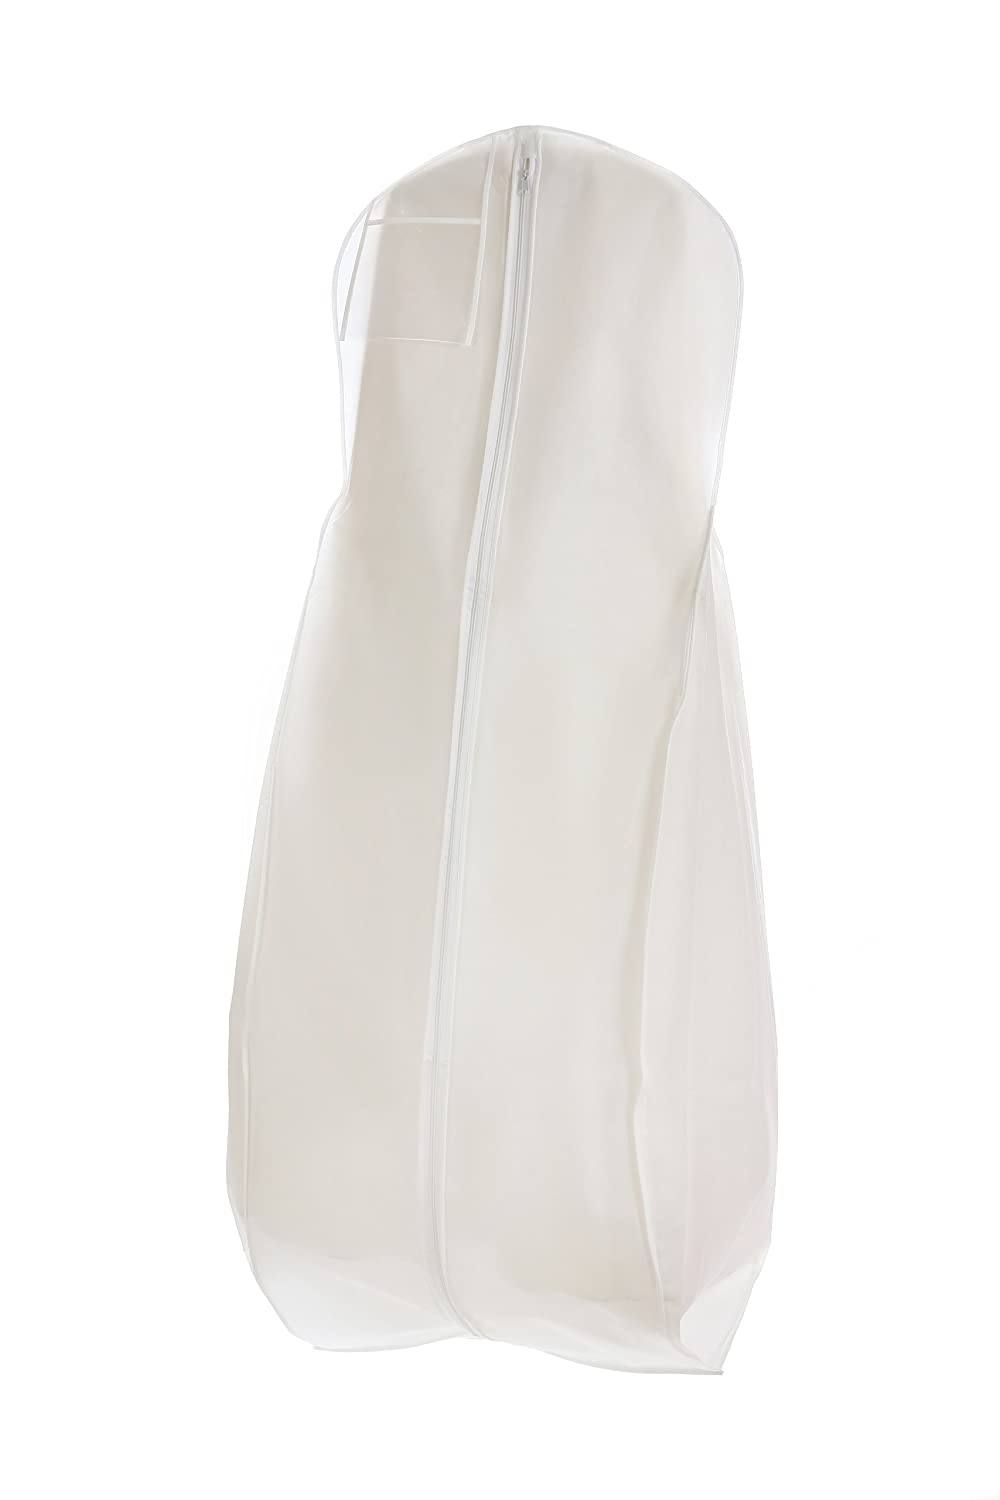 breathable white wedding gown garment bag storage huge paneled bottom